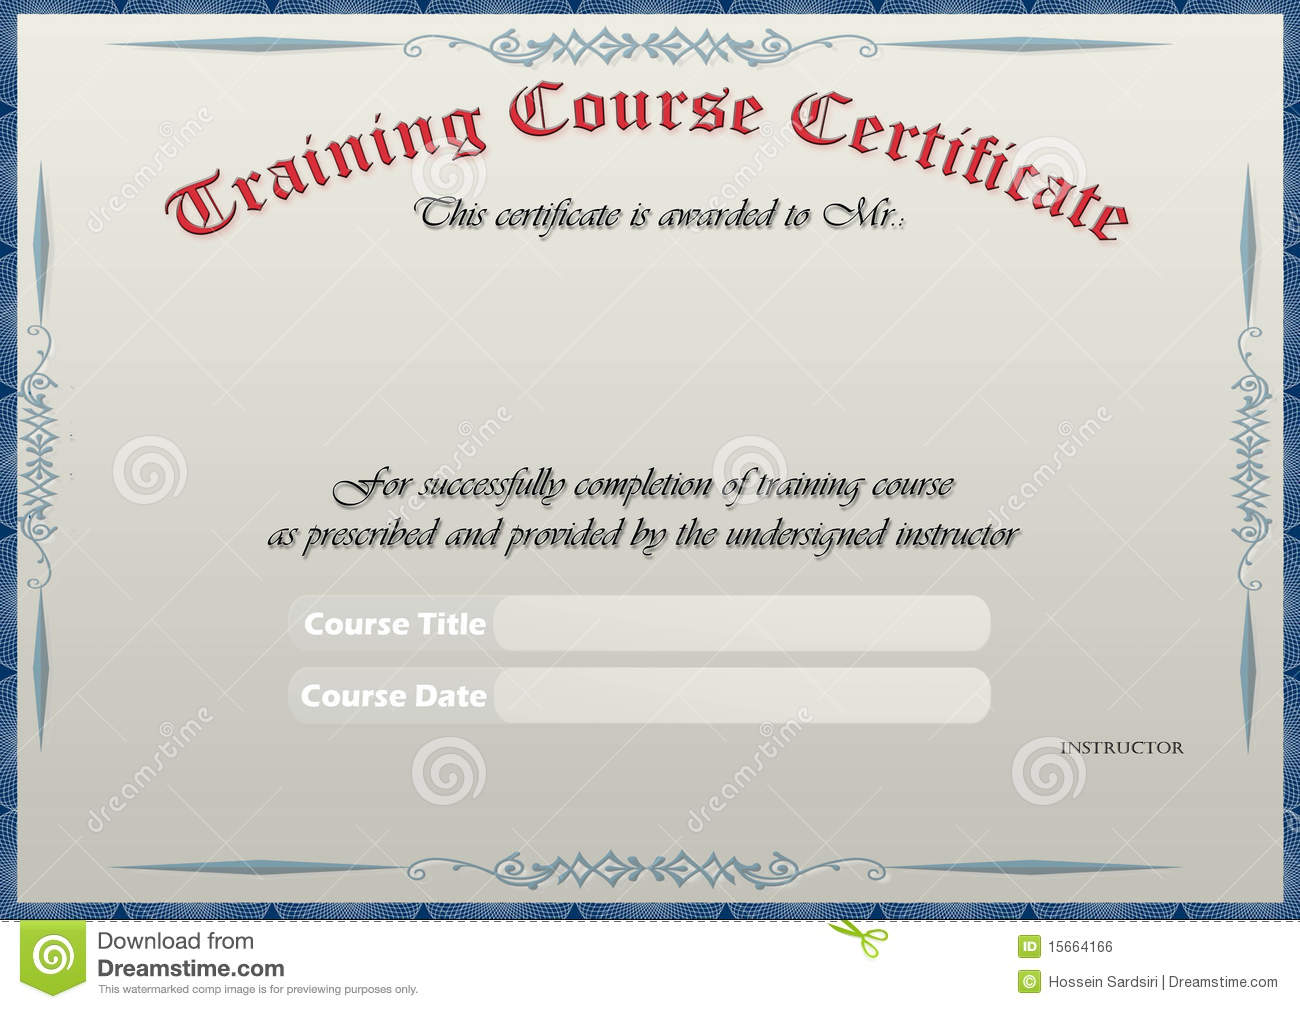 training certificate template free download radiovkm tk